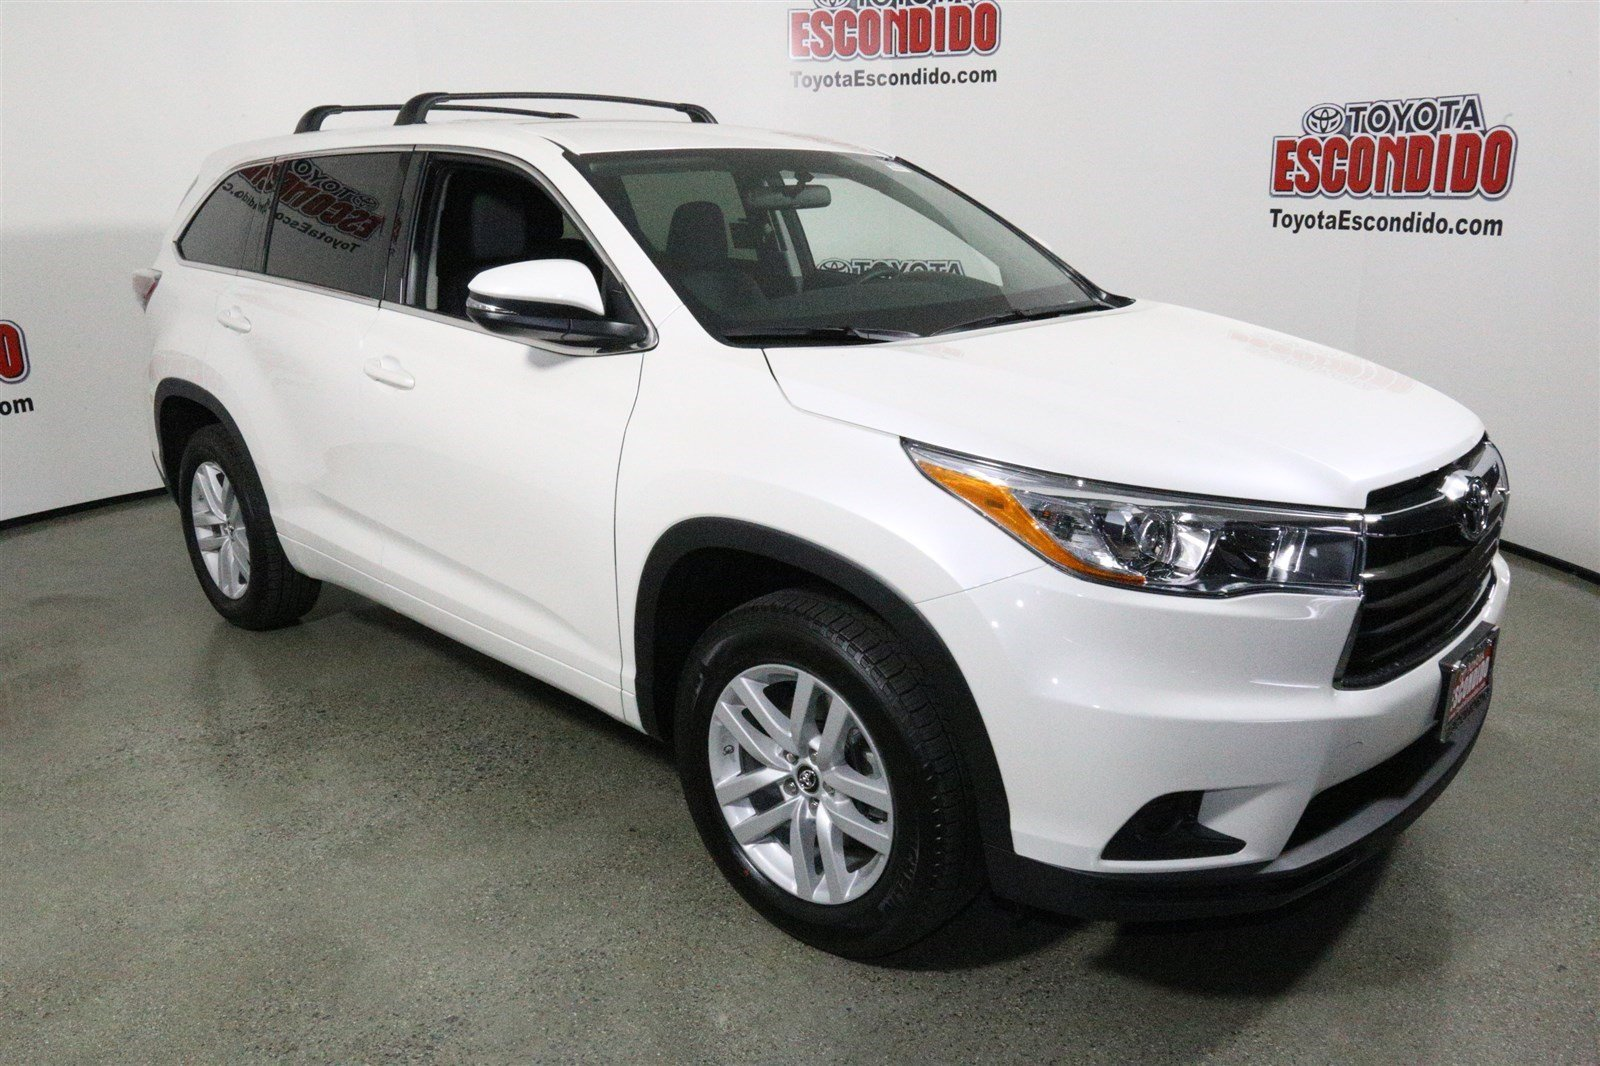 new 2016 toyota highlander le sport utility in escondido 1014362 toyota of escondido. Black Bedroom Furniture Sets. Home Design Ideas